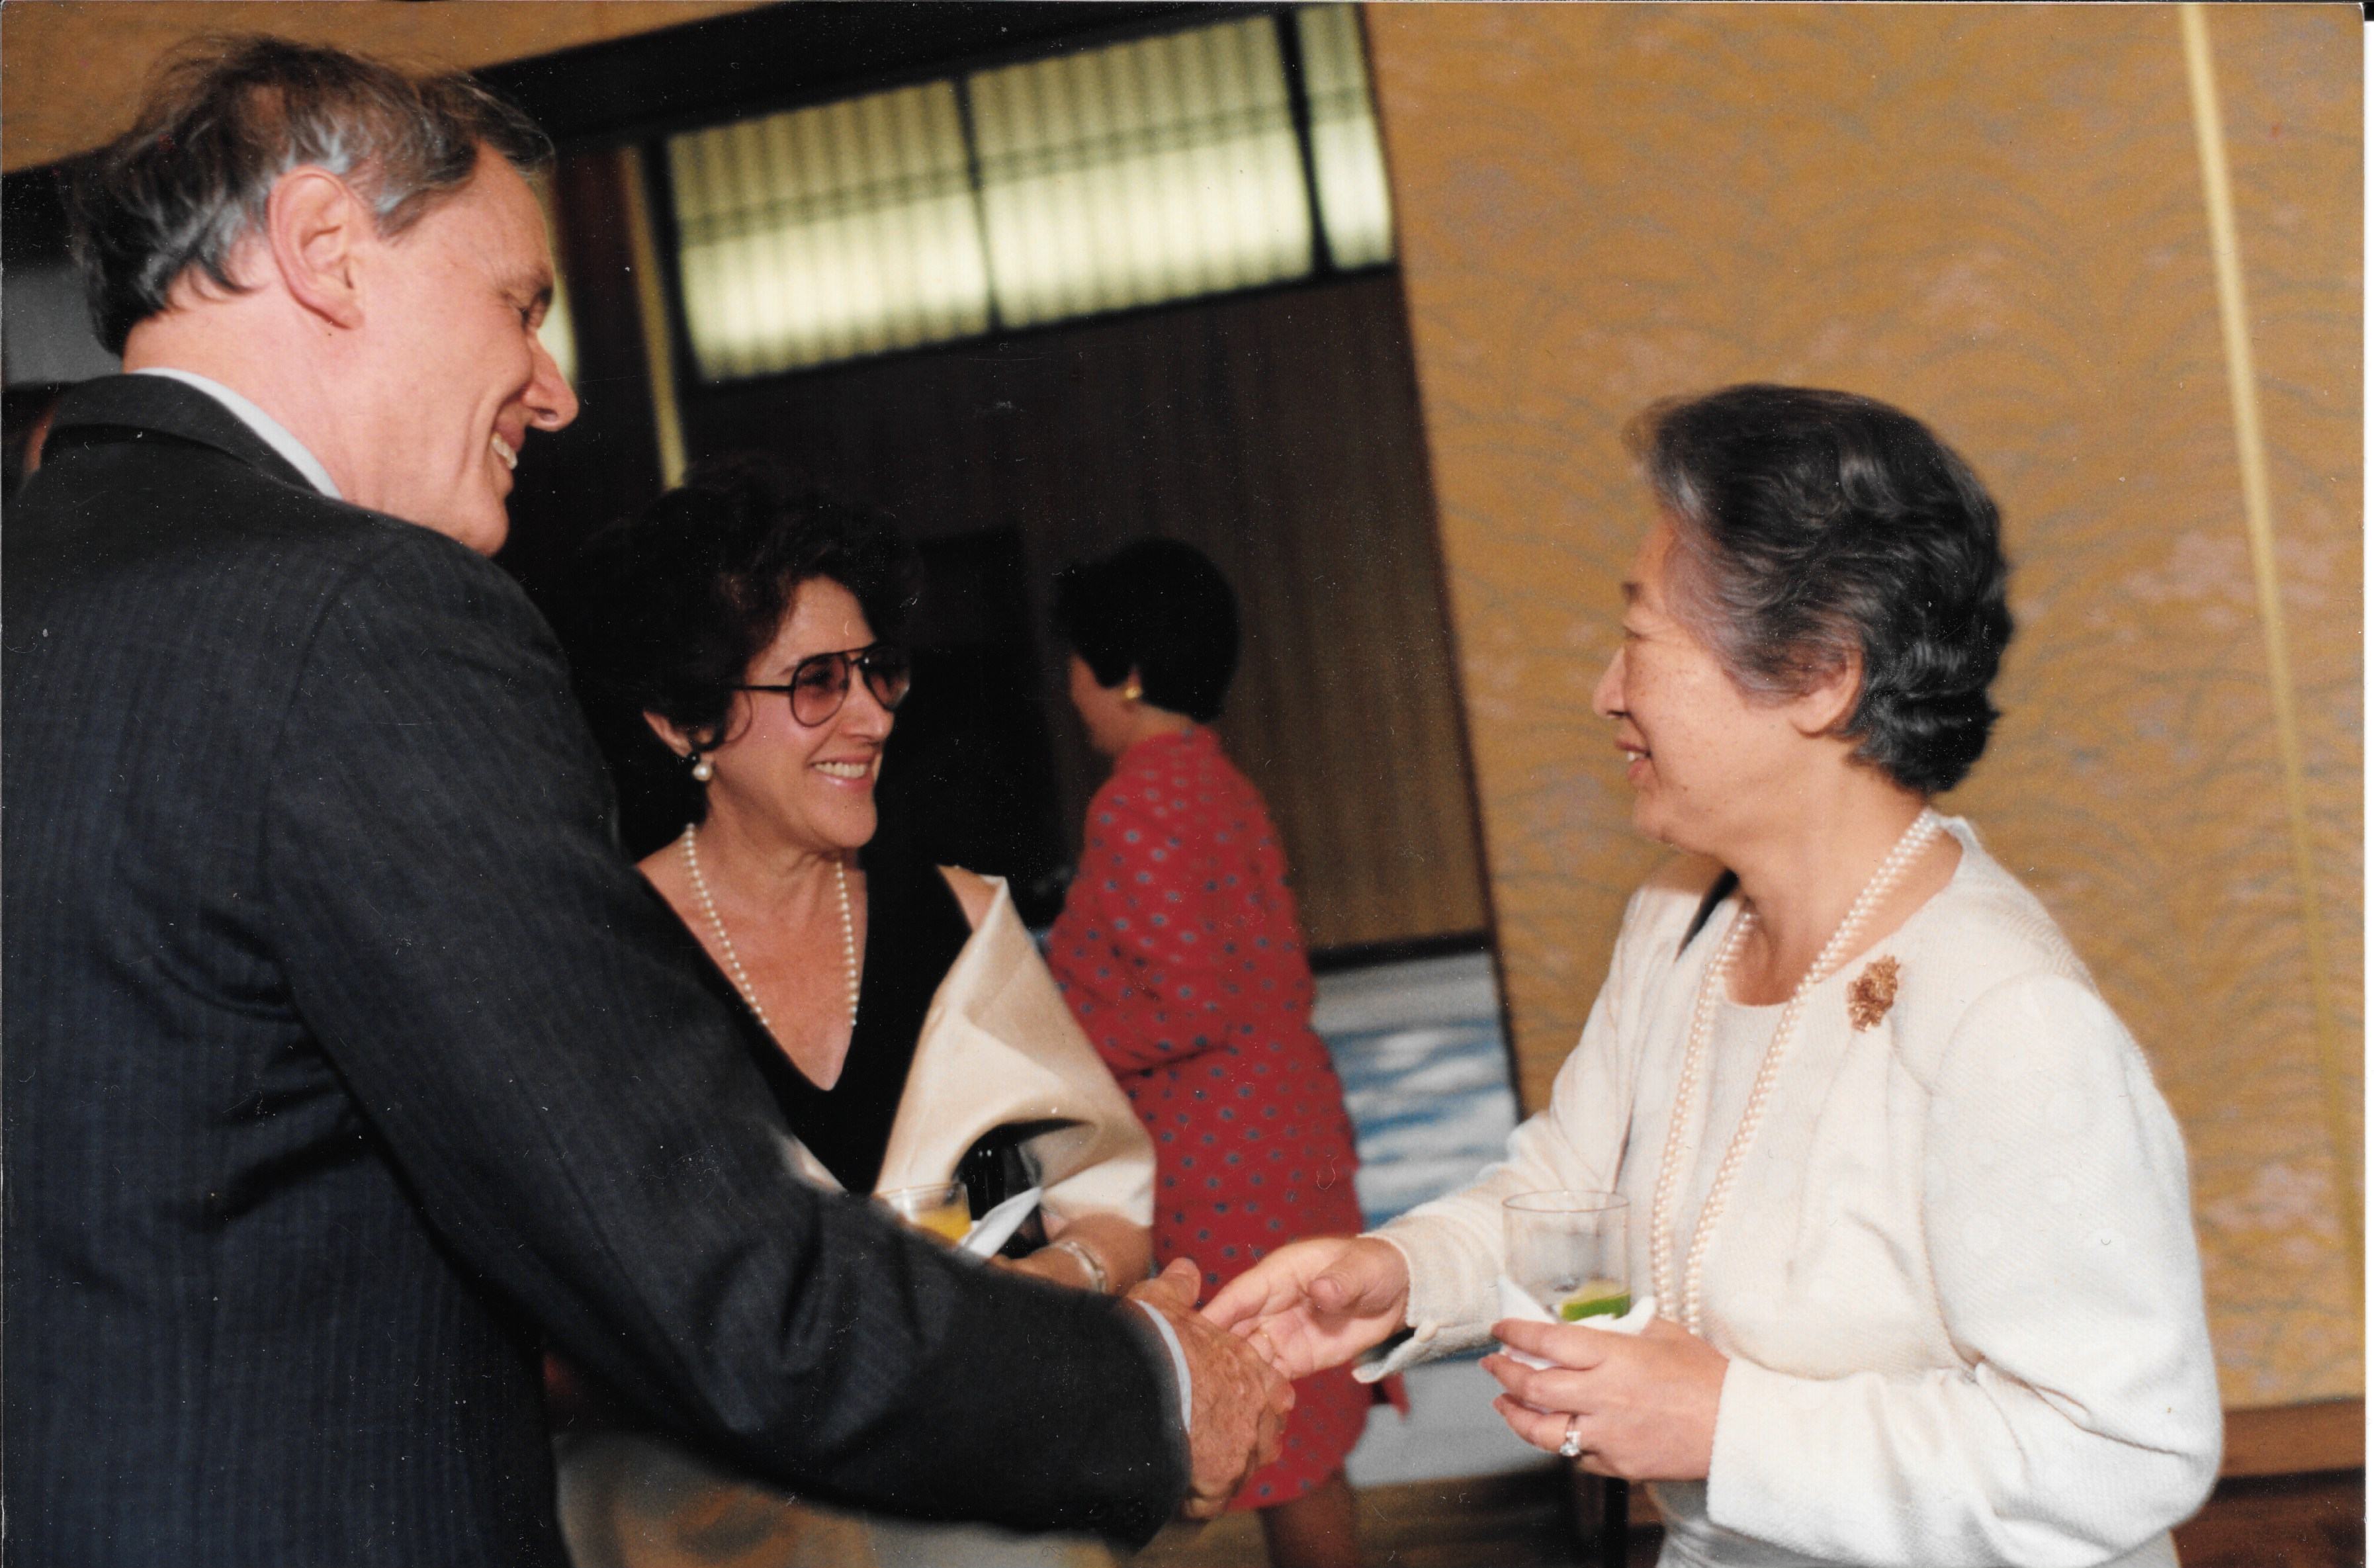 With U.N. High Commissioner for Refugees